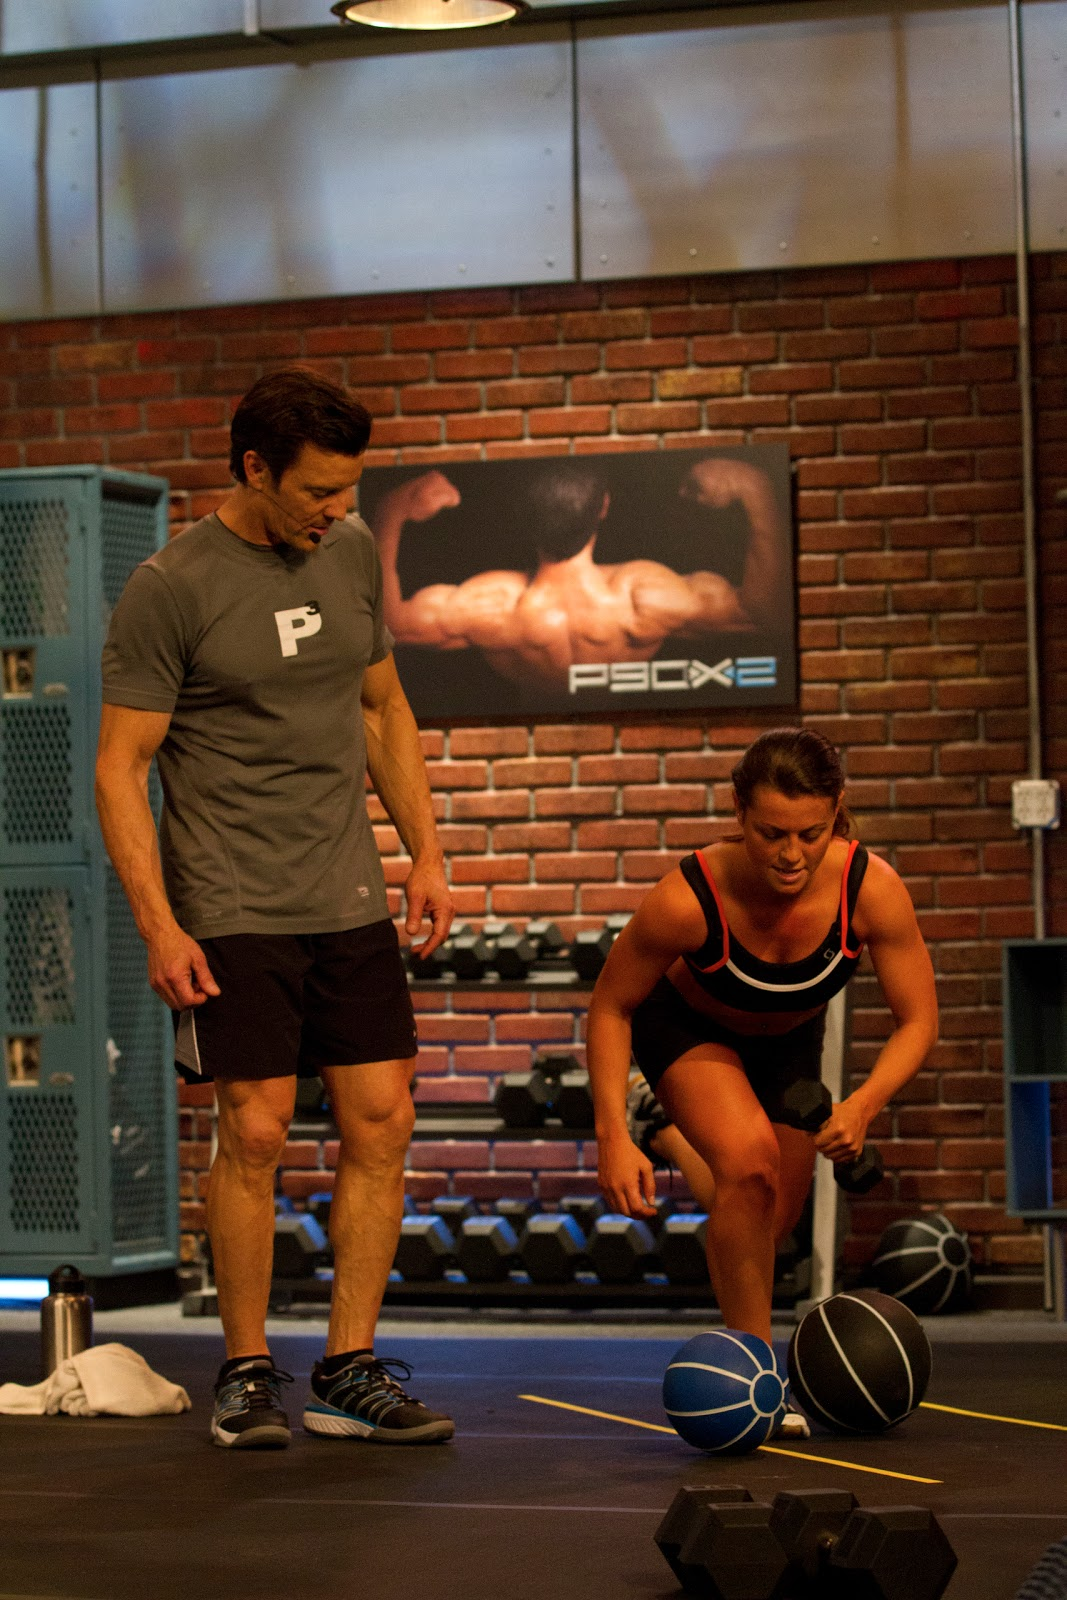 Check Out My P90X2 Athlete Profile | The Intuitive Athlete